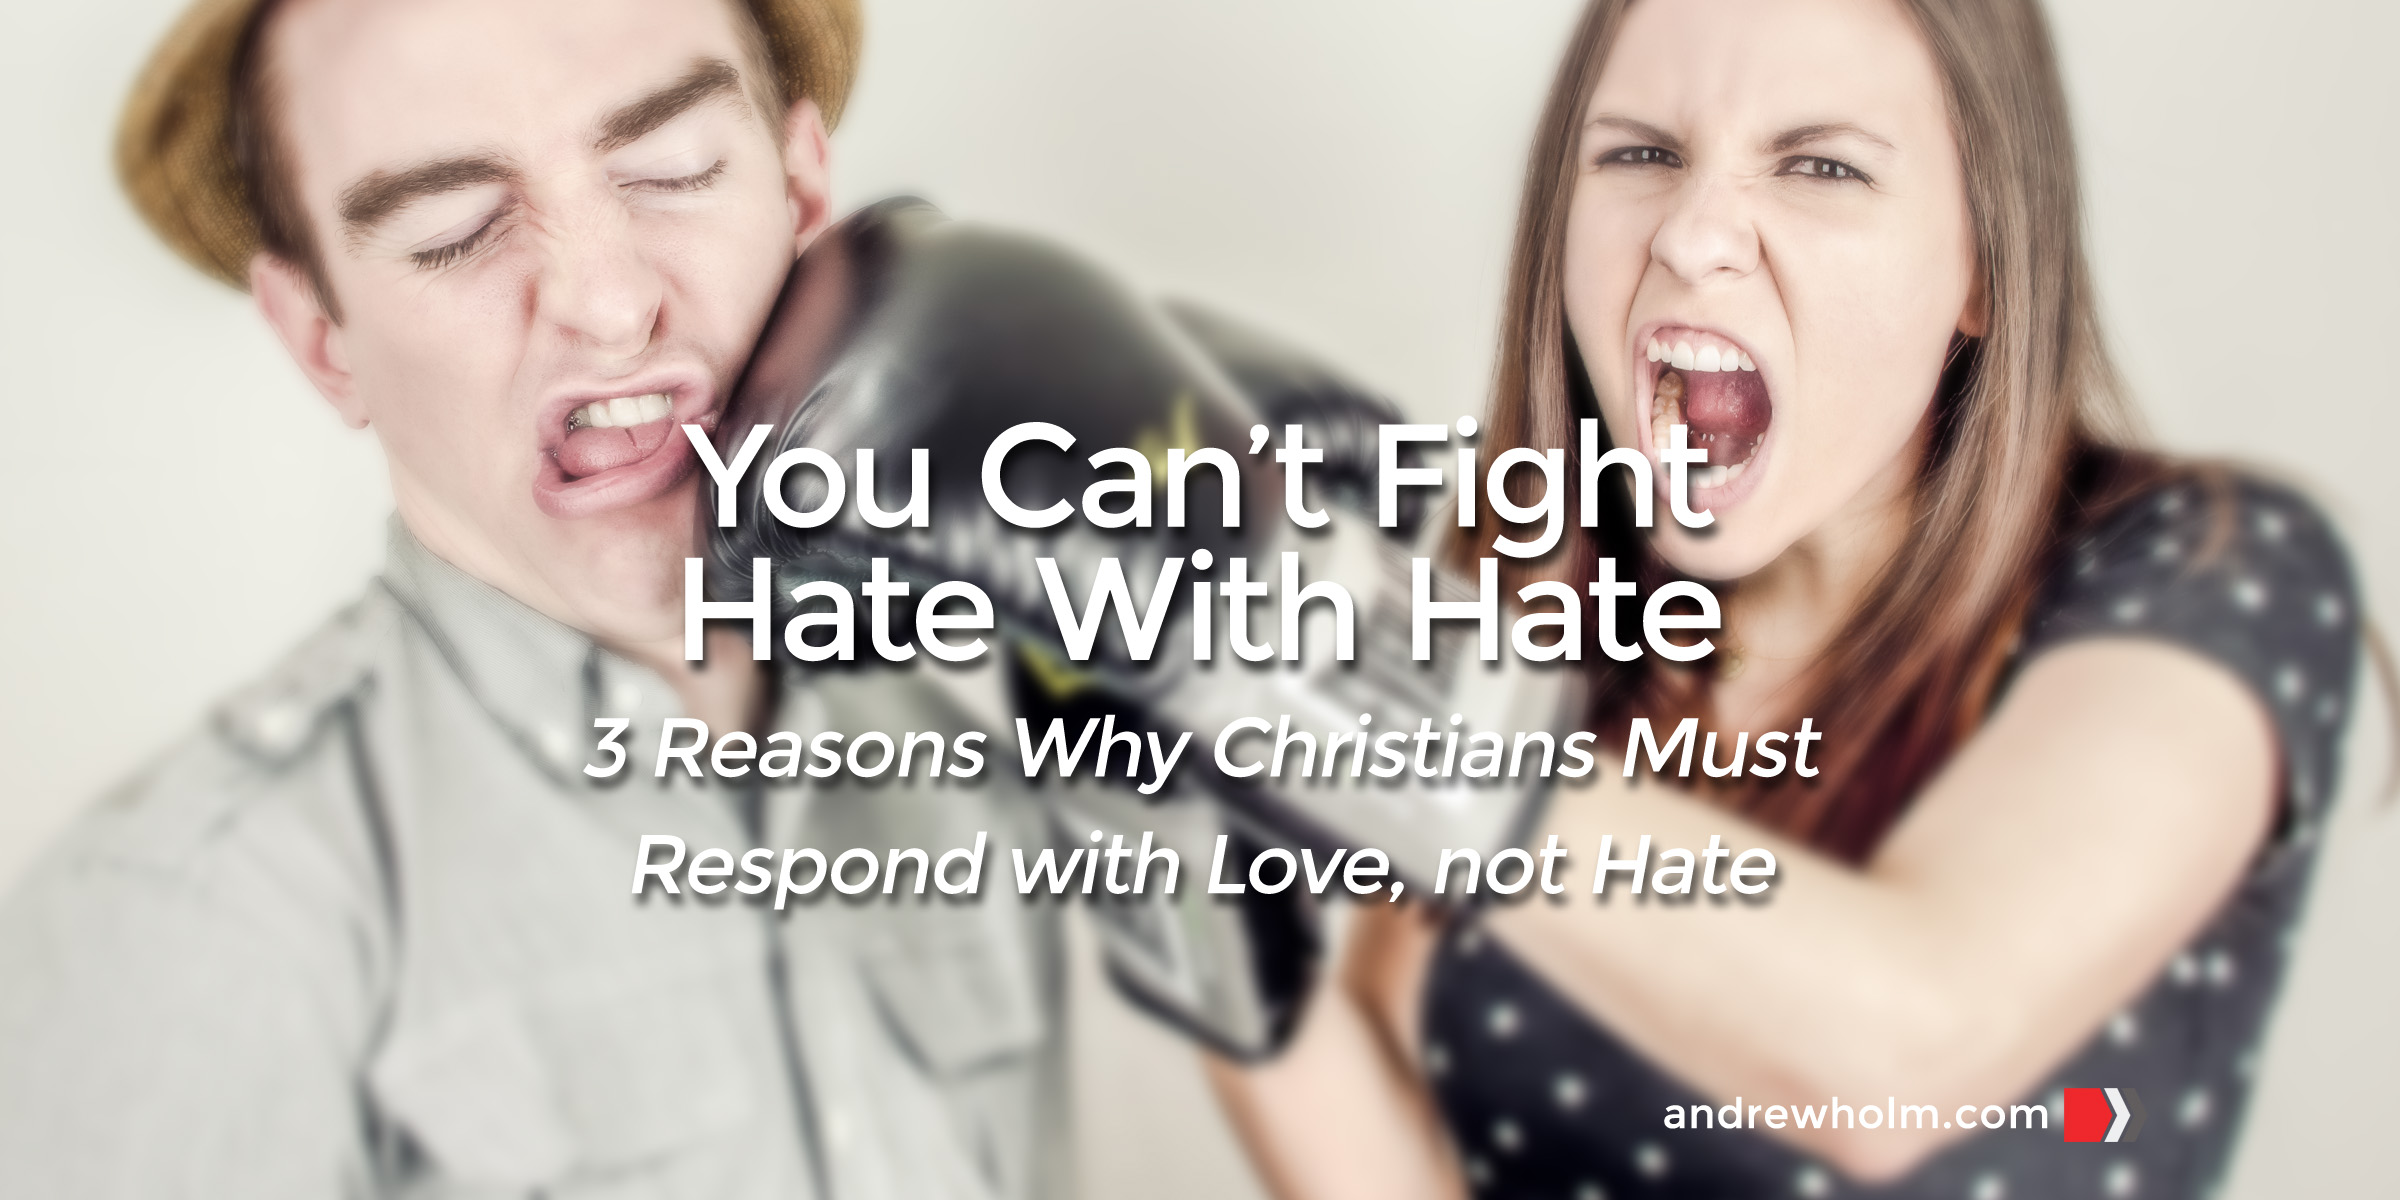 You Can't Fight Hate with Hate; Respond With Love